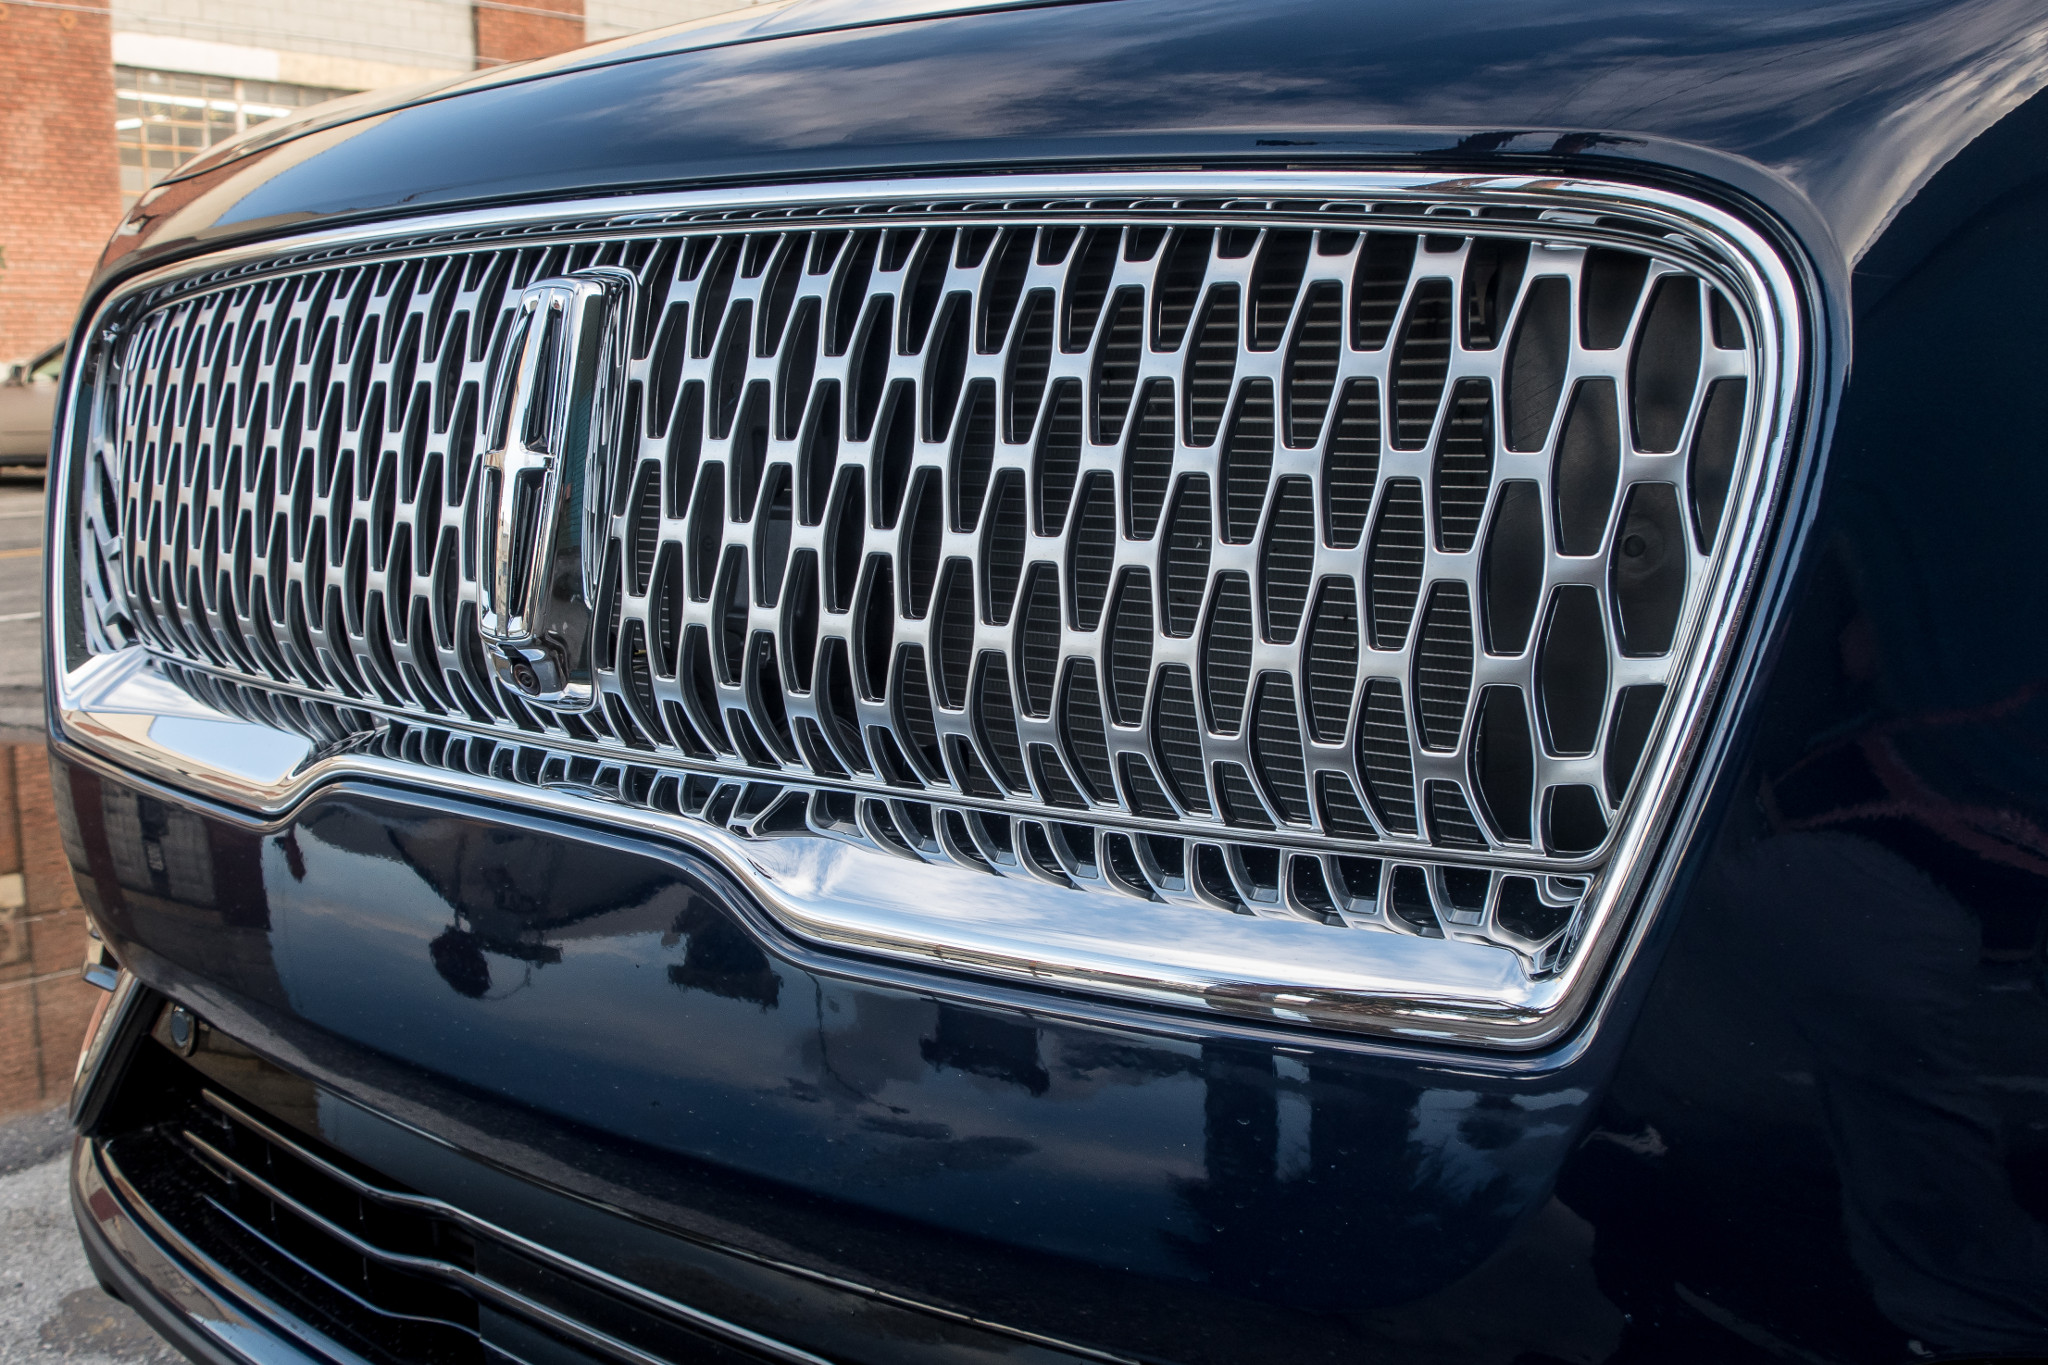 2019 Lincoln Nautilus: Everything You Need to Know